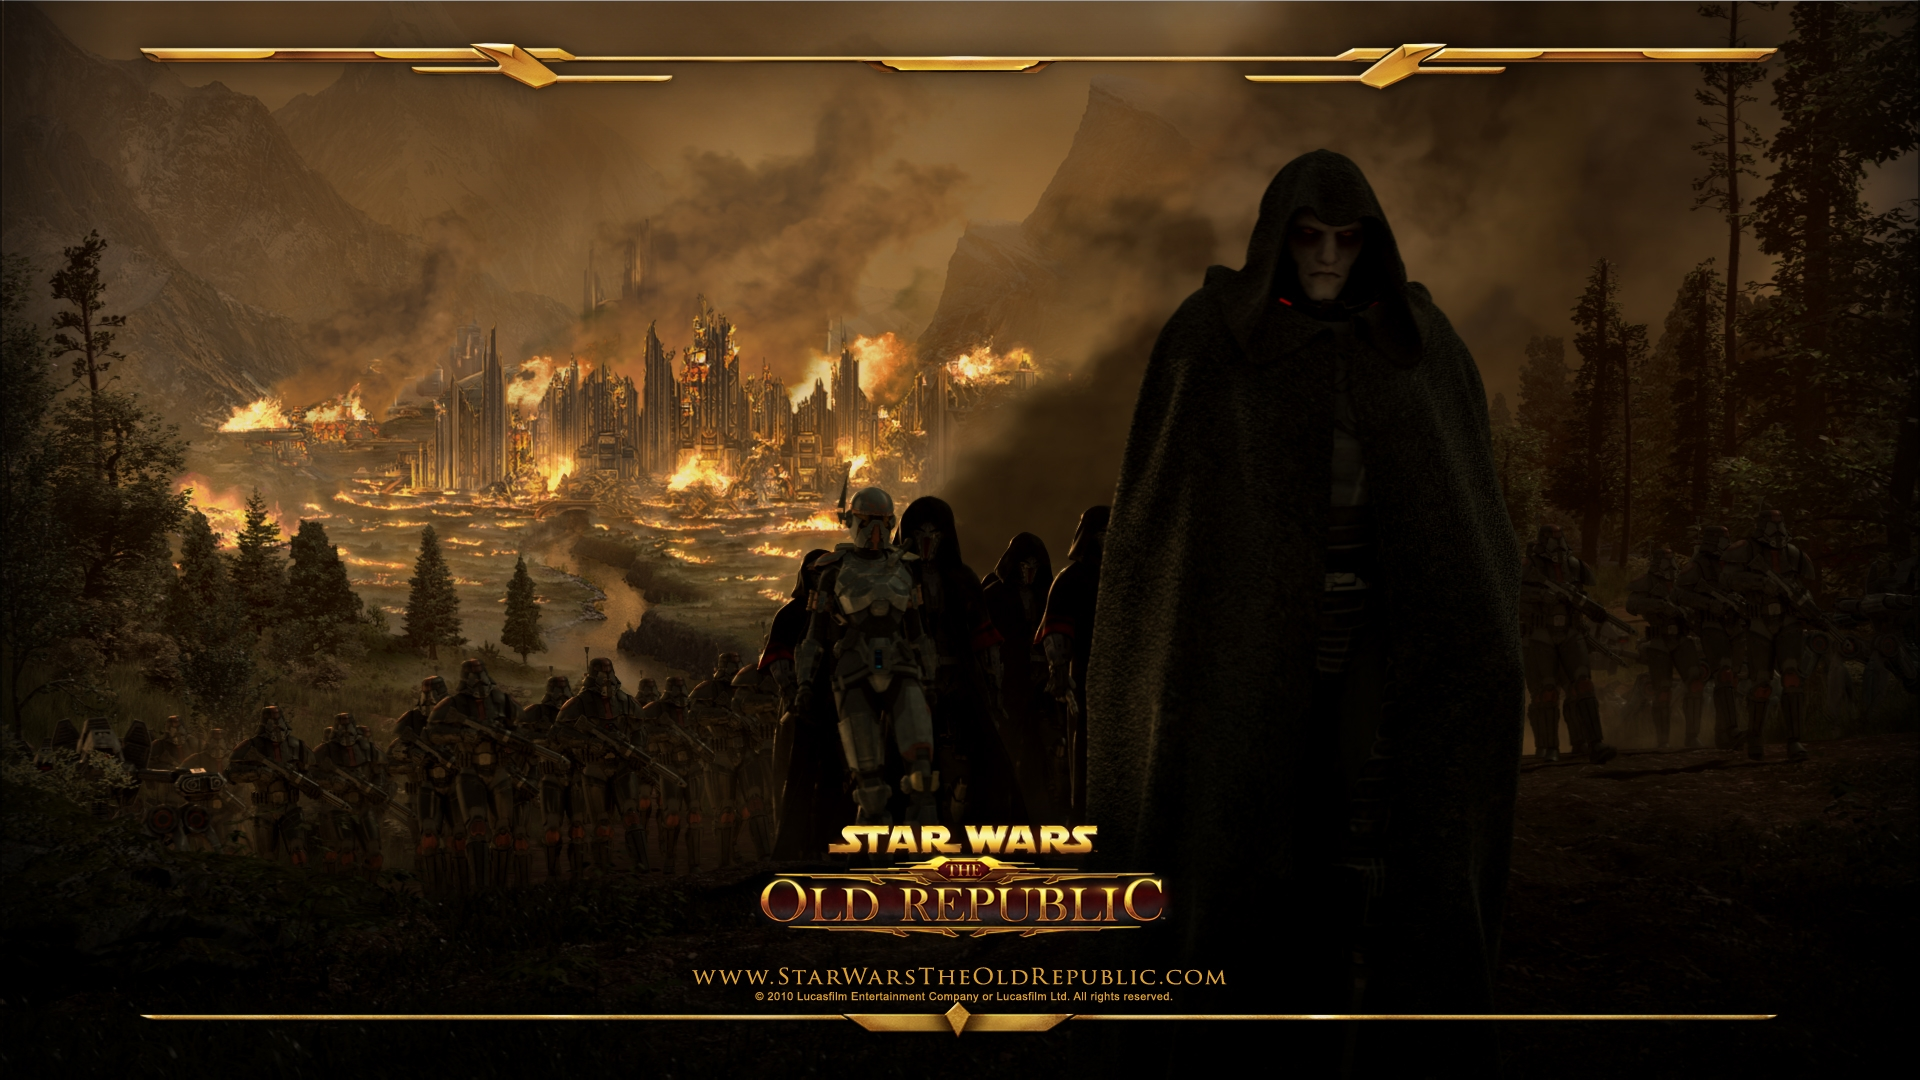 download wallpaper 1920x1080 star wars the old republic, wildfire